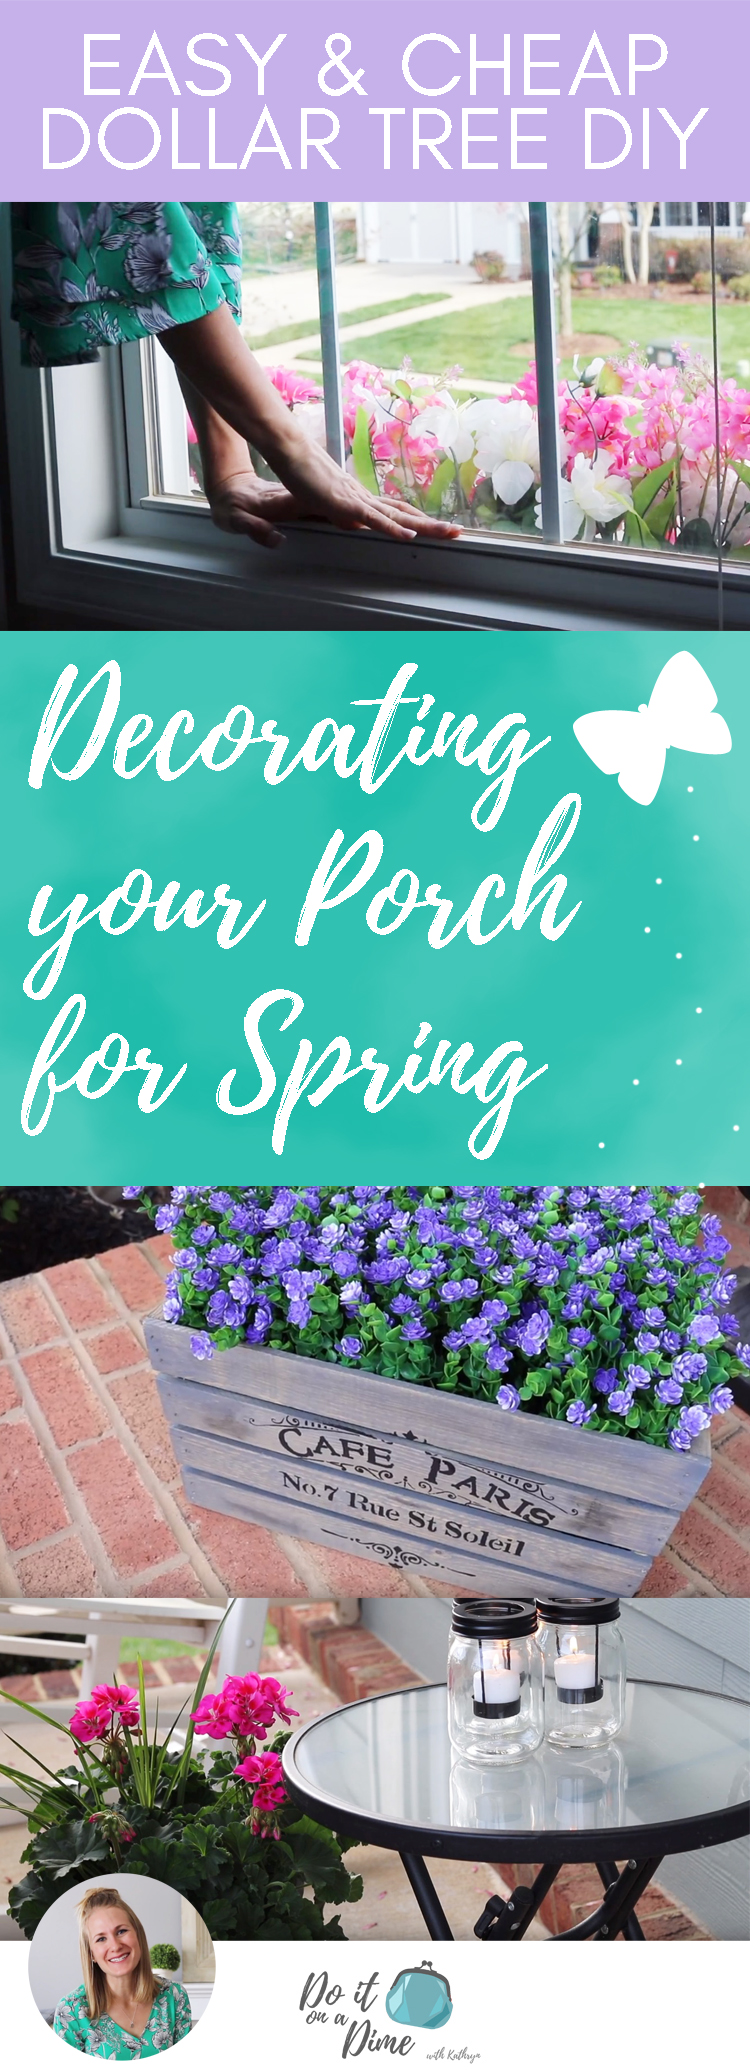 DIOAD-Porch-Decorating-Ideas-Pinterest-Image Diy Cheap Outdoor Rustic Lighting Ideas on cheap diy kitchen ideas, cheap diy nursery ideas, cheap diy fencing ideas, cheap diy floor ideas, cheap diy living room ideas, cheap diy bathroom ideas, cheap diy home ideas, cheap diy bedroom ideas, cheap diy furniture ideas, cheap diy landscaping ideas, cheap diy ceiling ideas,